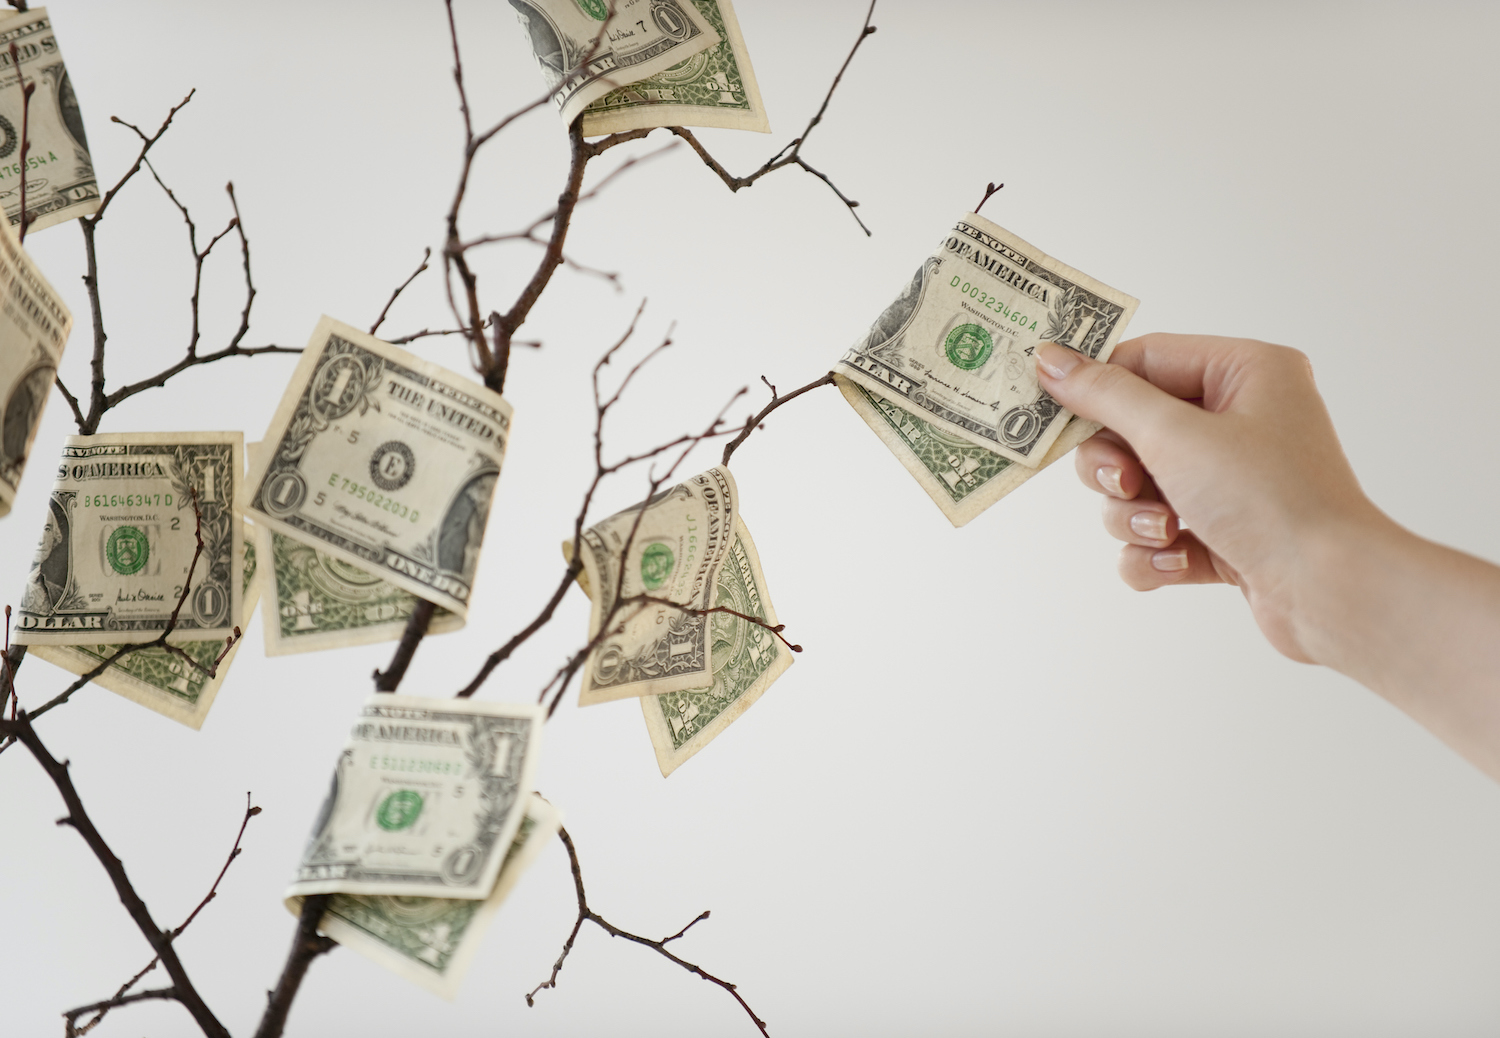 Money tree: an adult hand reaches for dollar bills growing on a leafless tree